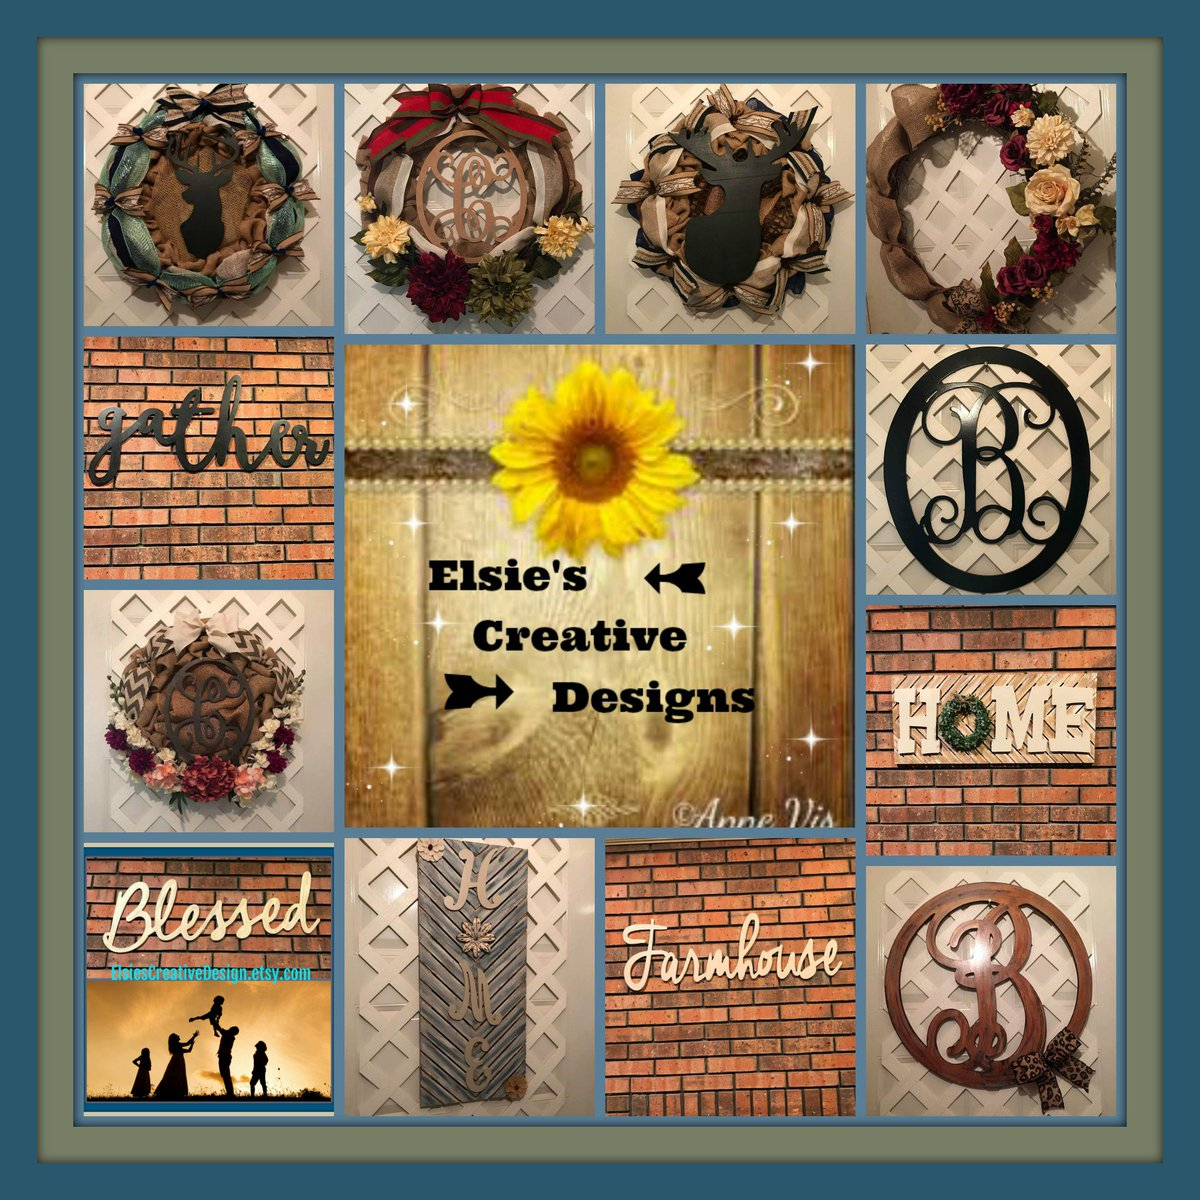 Farmhouse &amp; Wedding Décor  CUSTOM ORDERS Welcomed  http:// ElsiesCreativeDesign.etsy.com  &nbsp;   #etsyspecialt @Quickest_Rts @TweetDec #integritytt #EtsyHandmade #etsyshop #EpicOnEtsy #FarmhouseDecor #HomeDecor #WeddingDecor #RusticWedding #Gather #Blessed #Home #Farmhouse #MonogramGift @etsy #etsyRT<br>http://pic.twitter.com/D80h9ISaTB